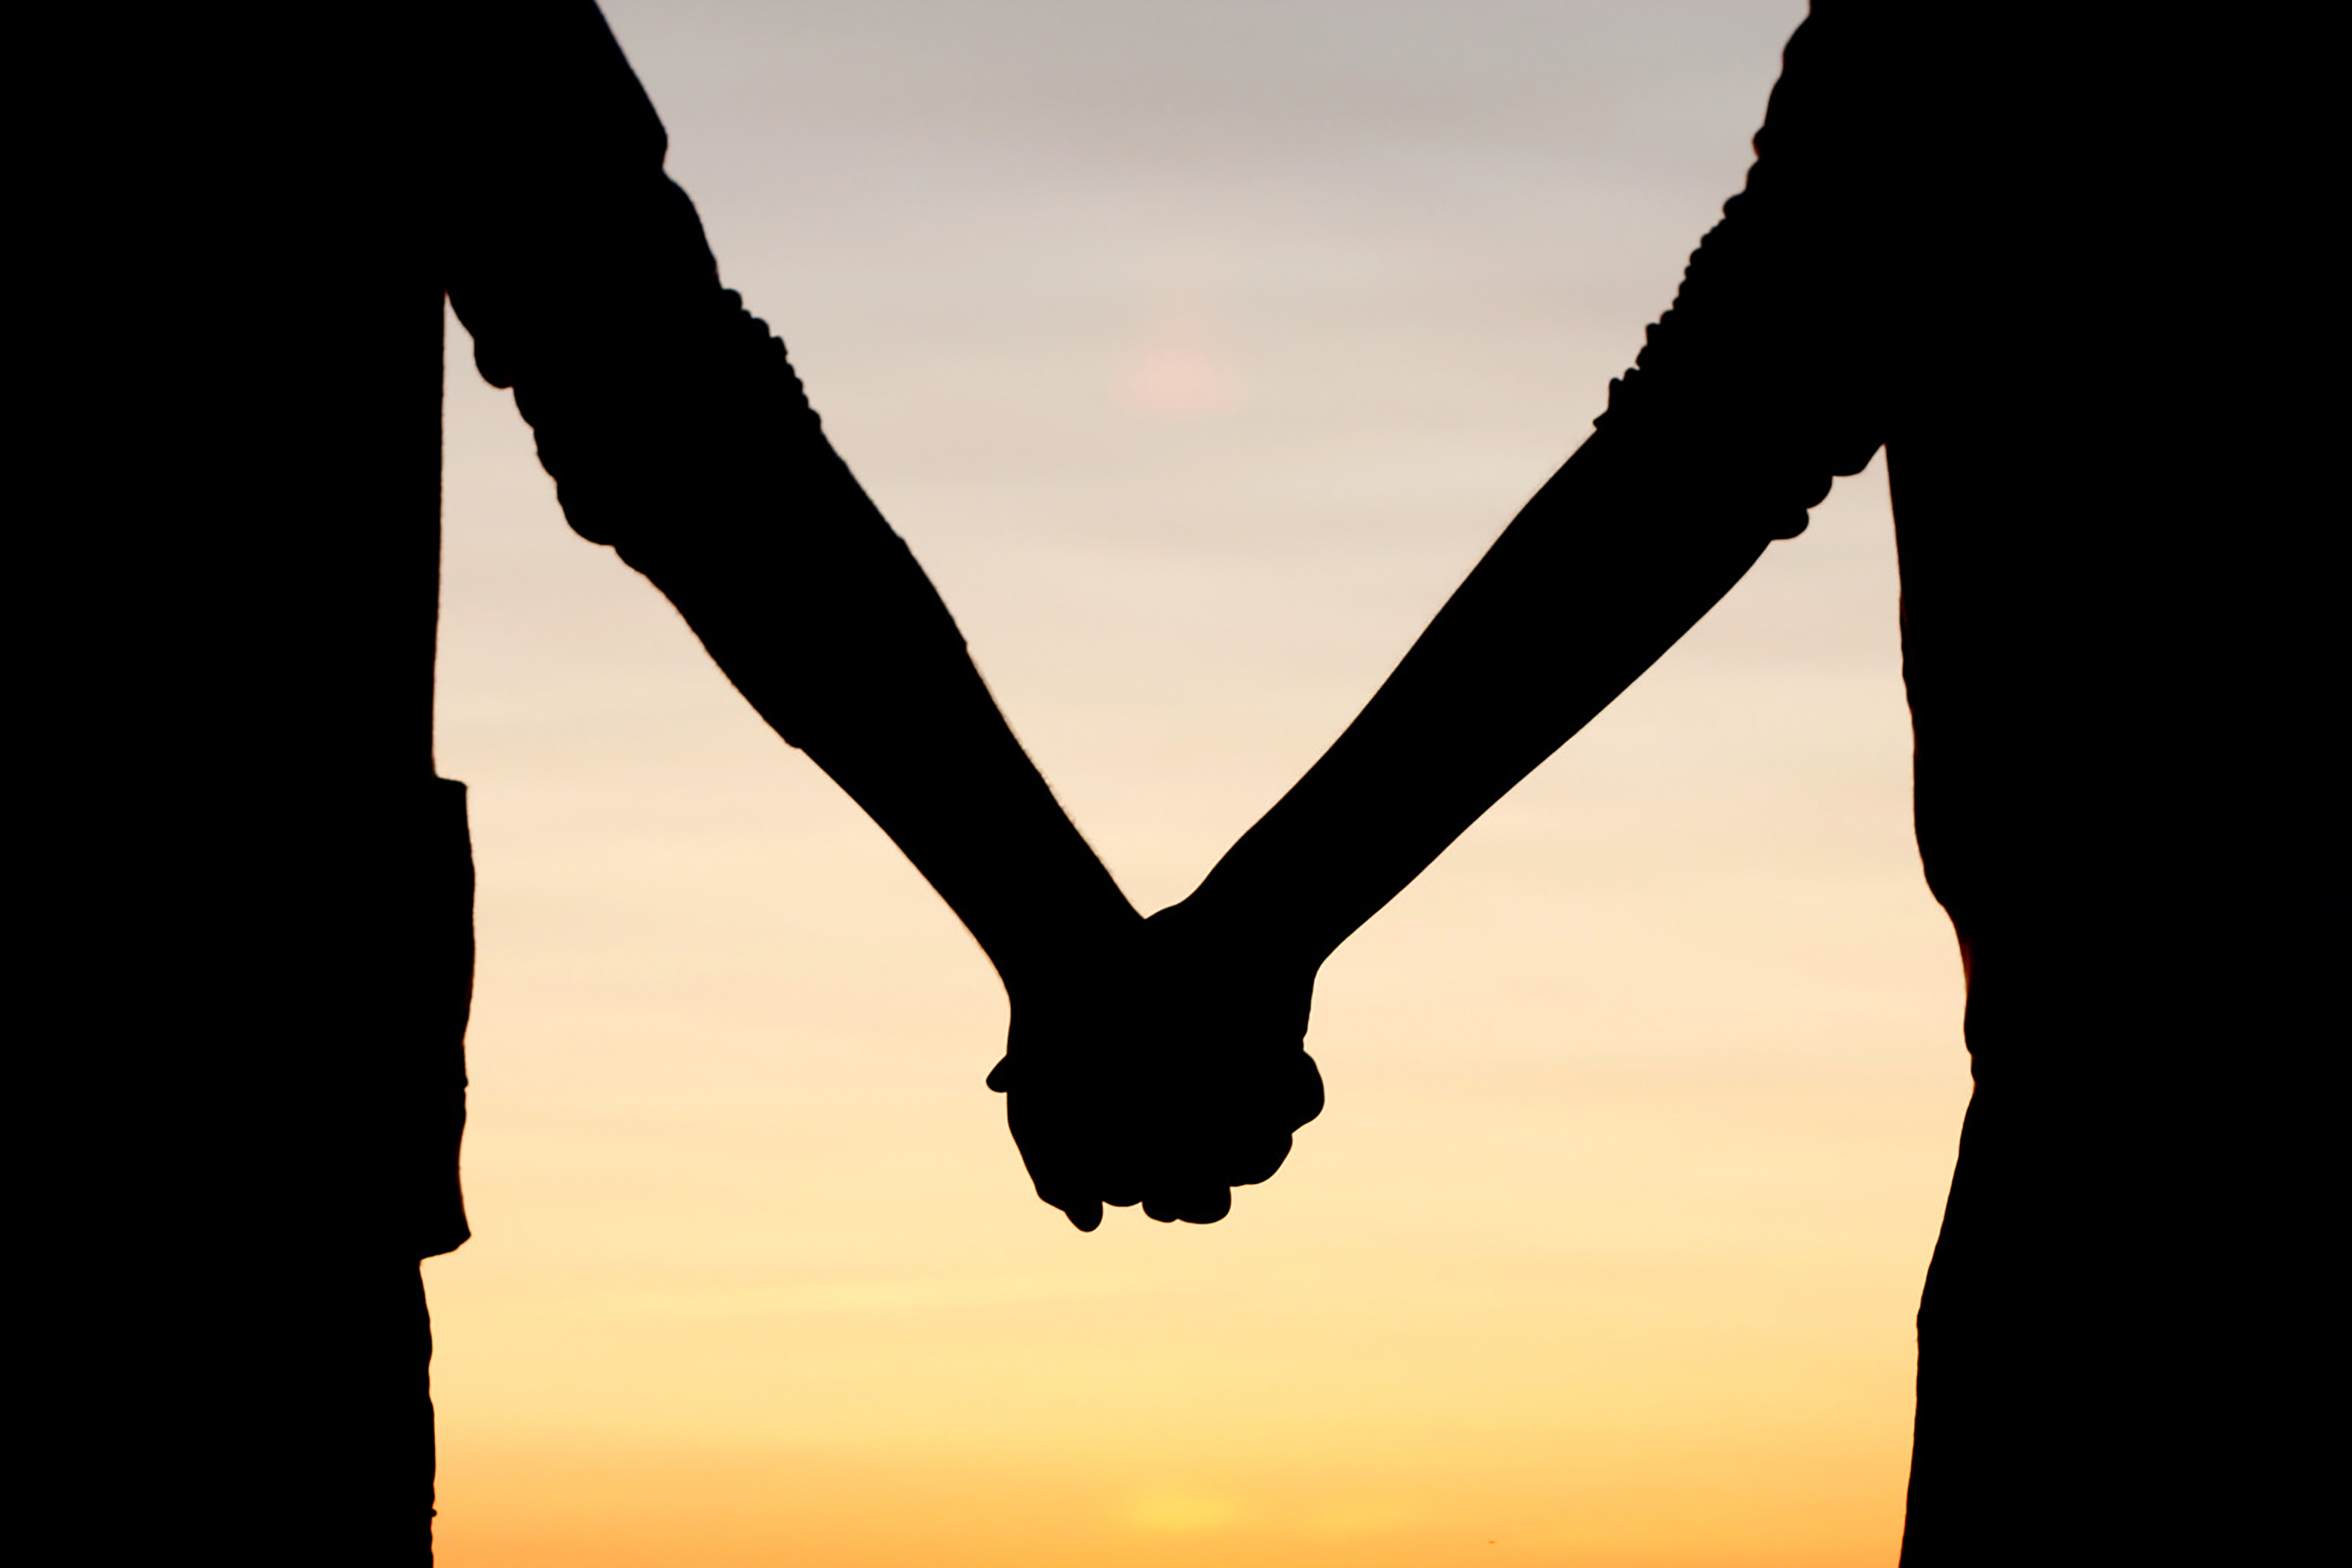 friends-holding-hands-images-HOLDING-HANDS